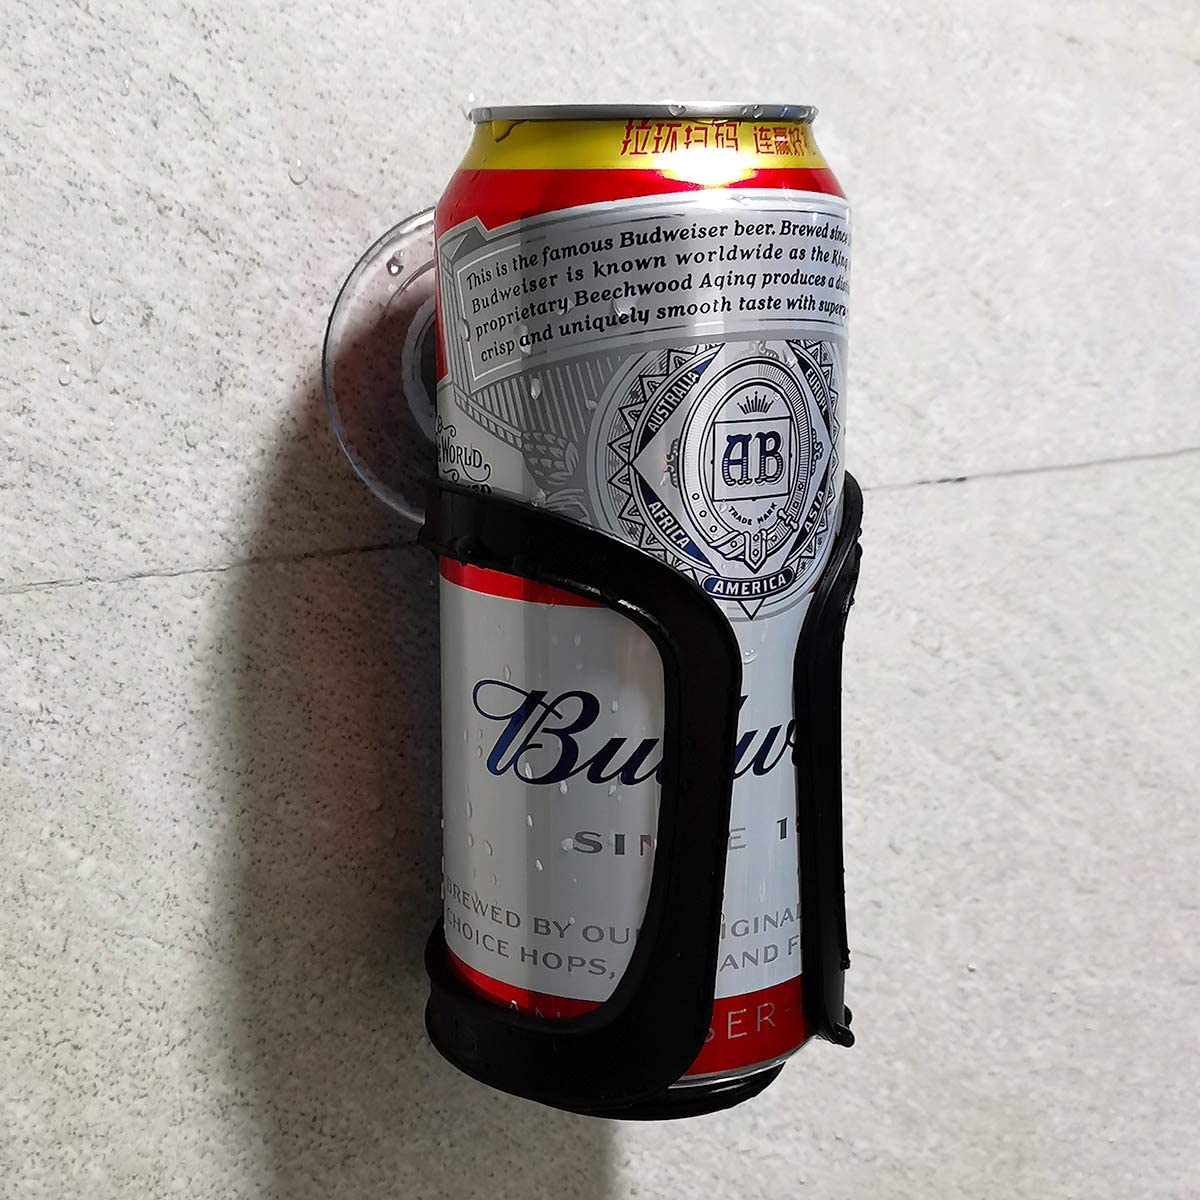 Seatery Beer Can Bottle Holder, Shower Drink Holder, Bathroom Cup Holder for All Canned Bottle Beer Wine Drink, Wall Suction Up Holder, Shower Accessories, Well Package for Gift.